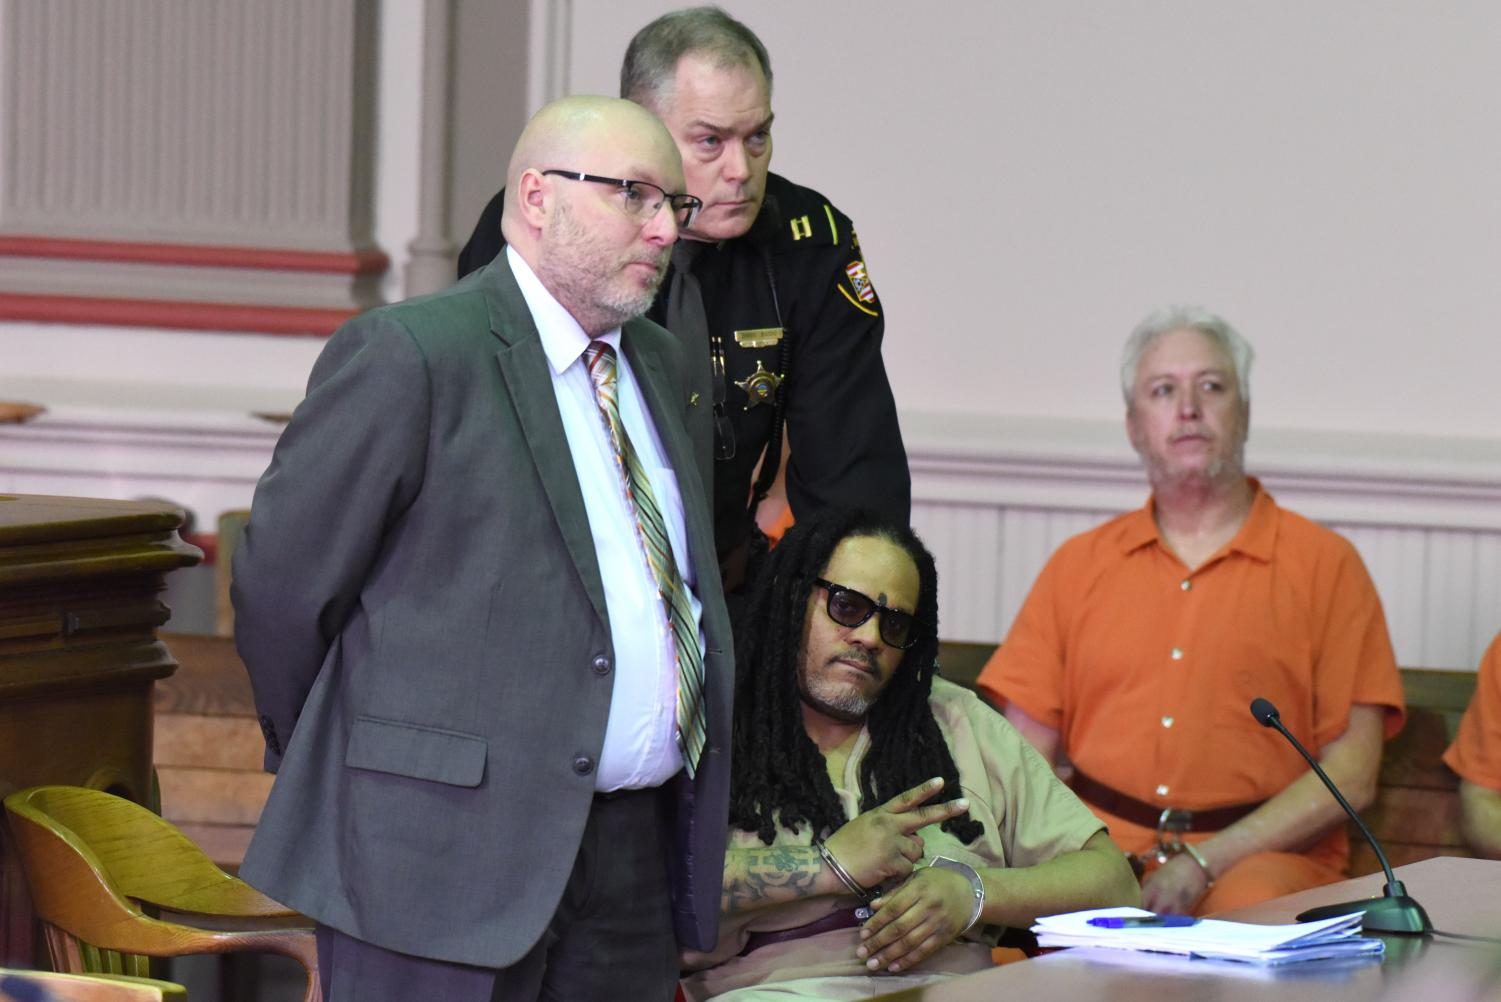 Gerald Draughn locks eyes with the camera during his arraignment in February.